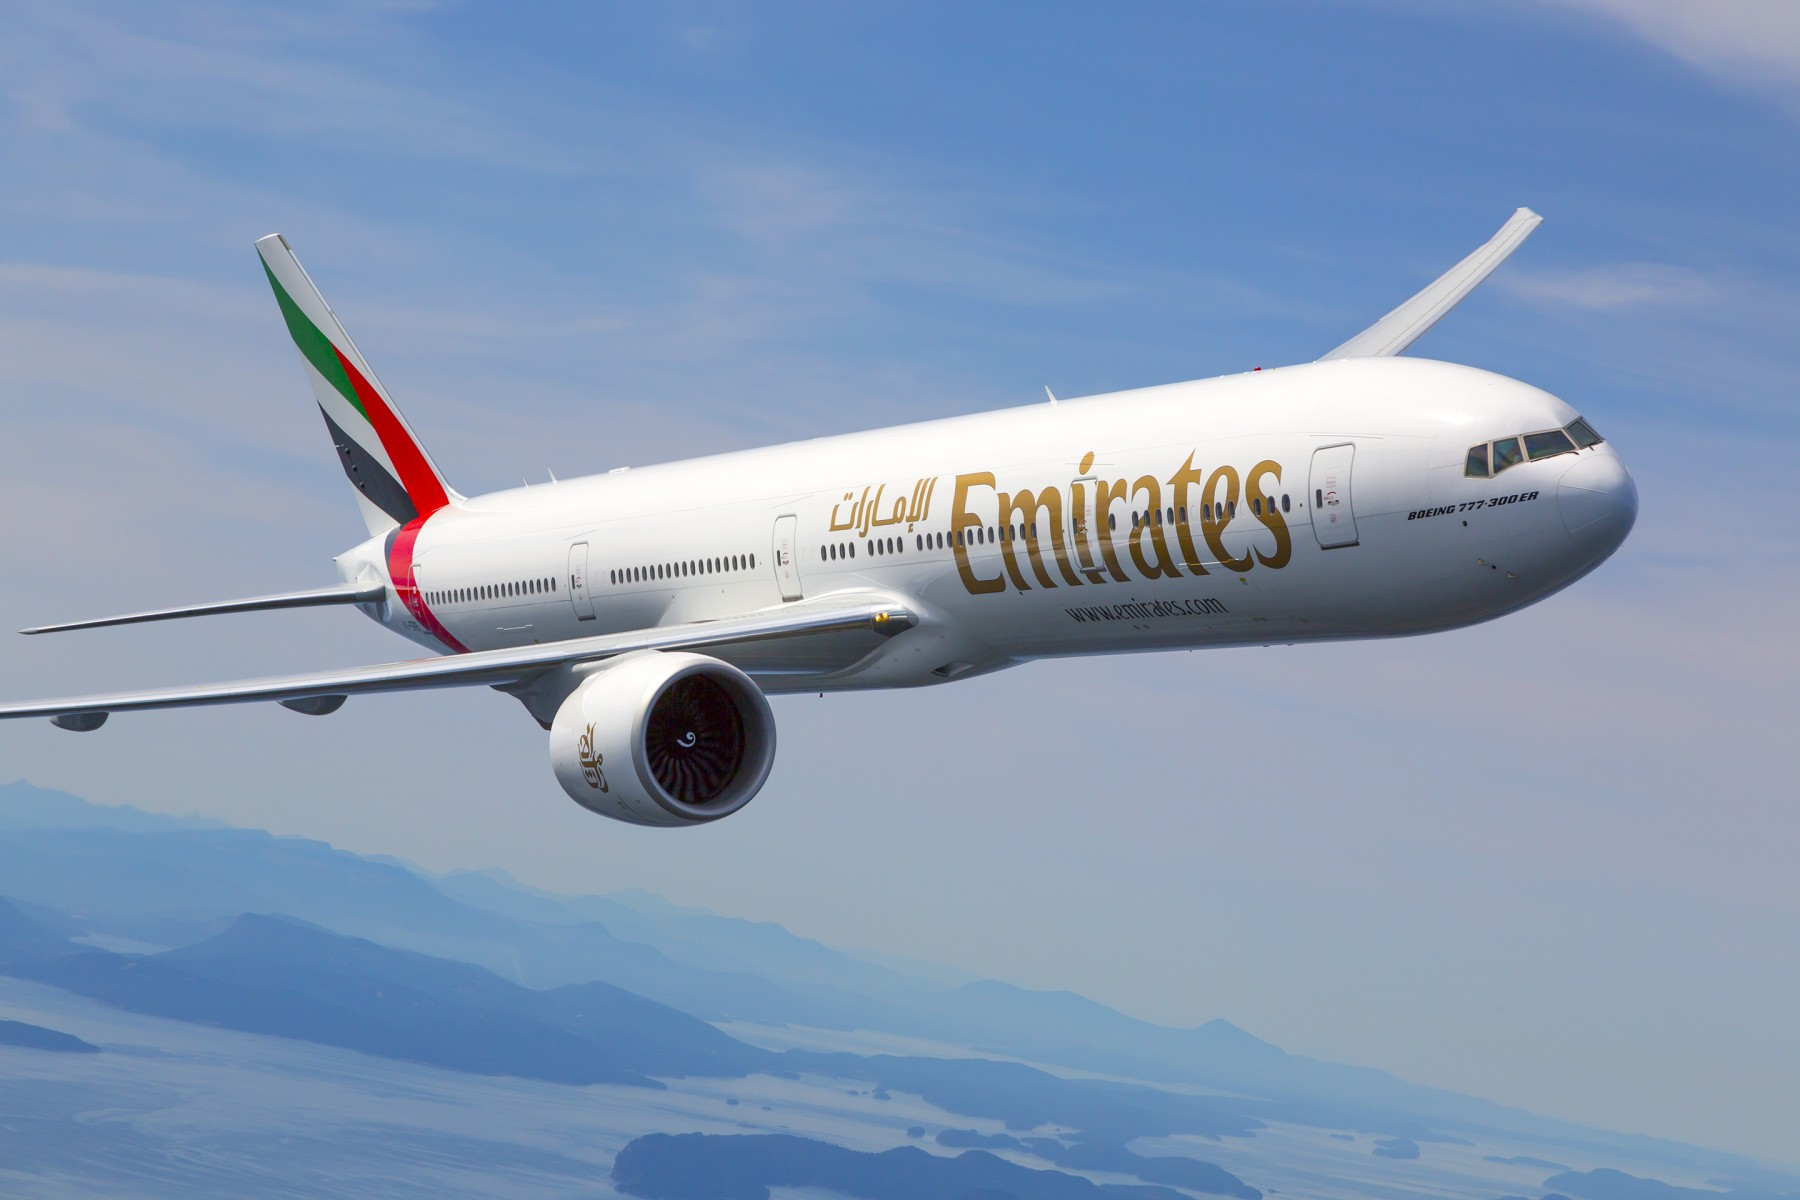 emiratesboeing777-300er